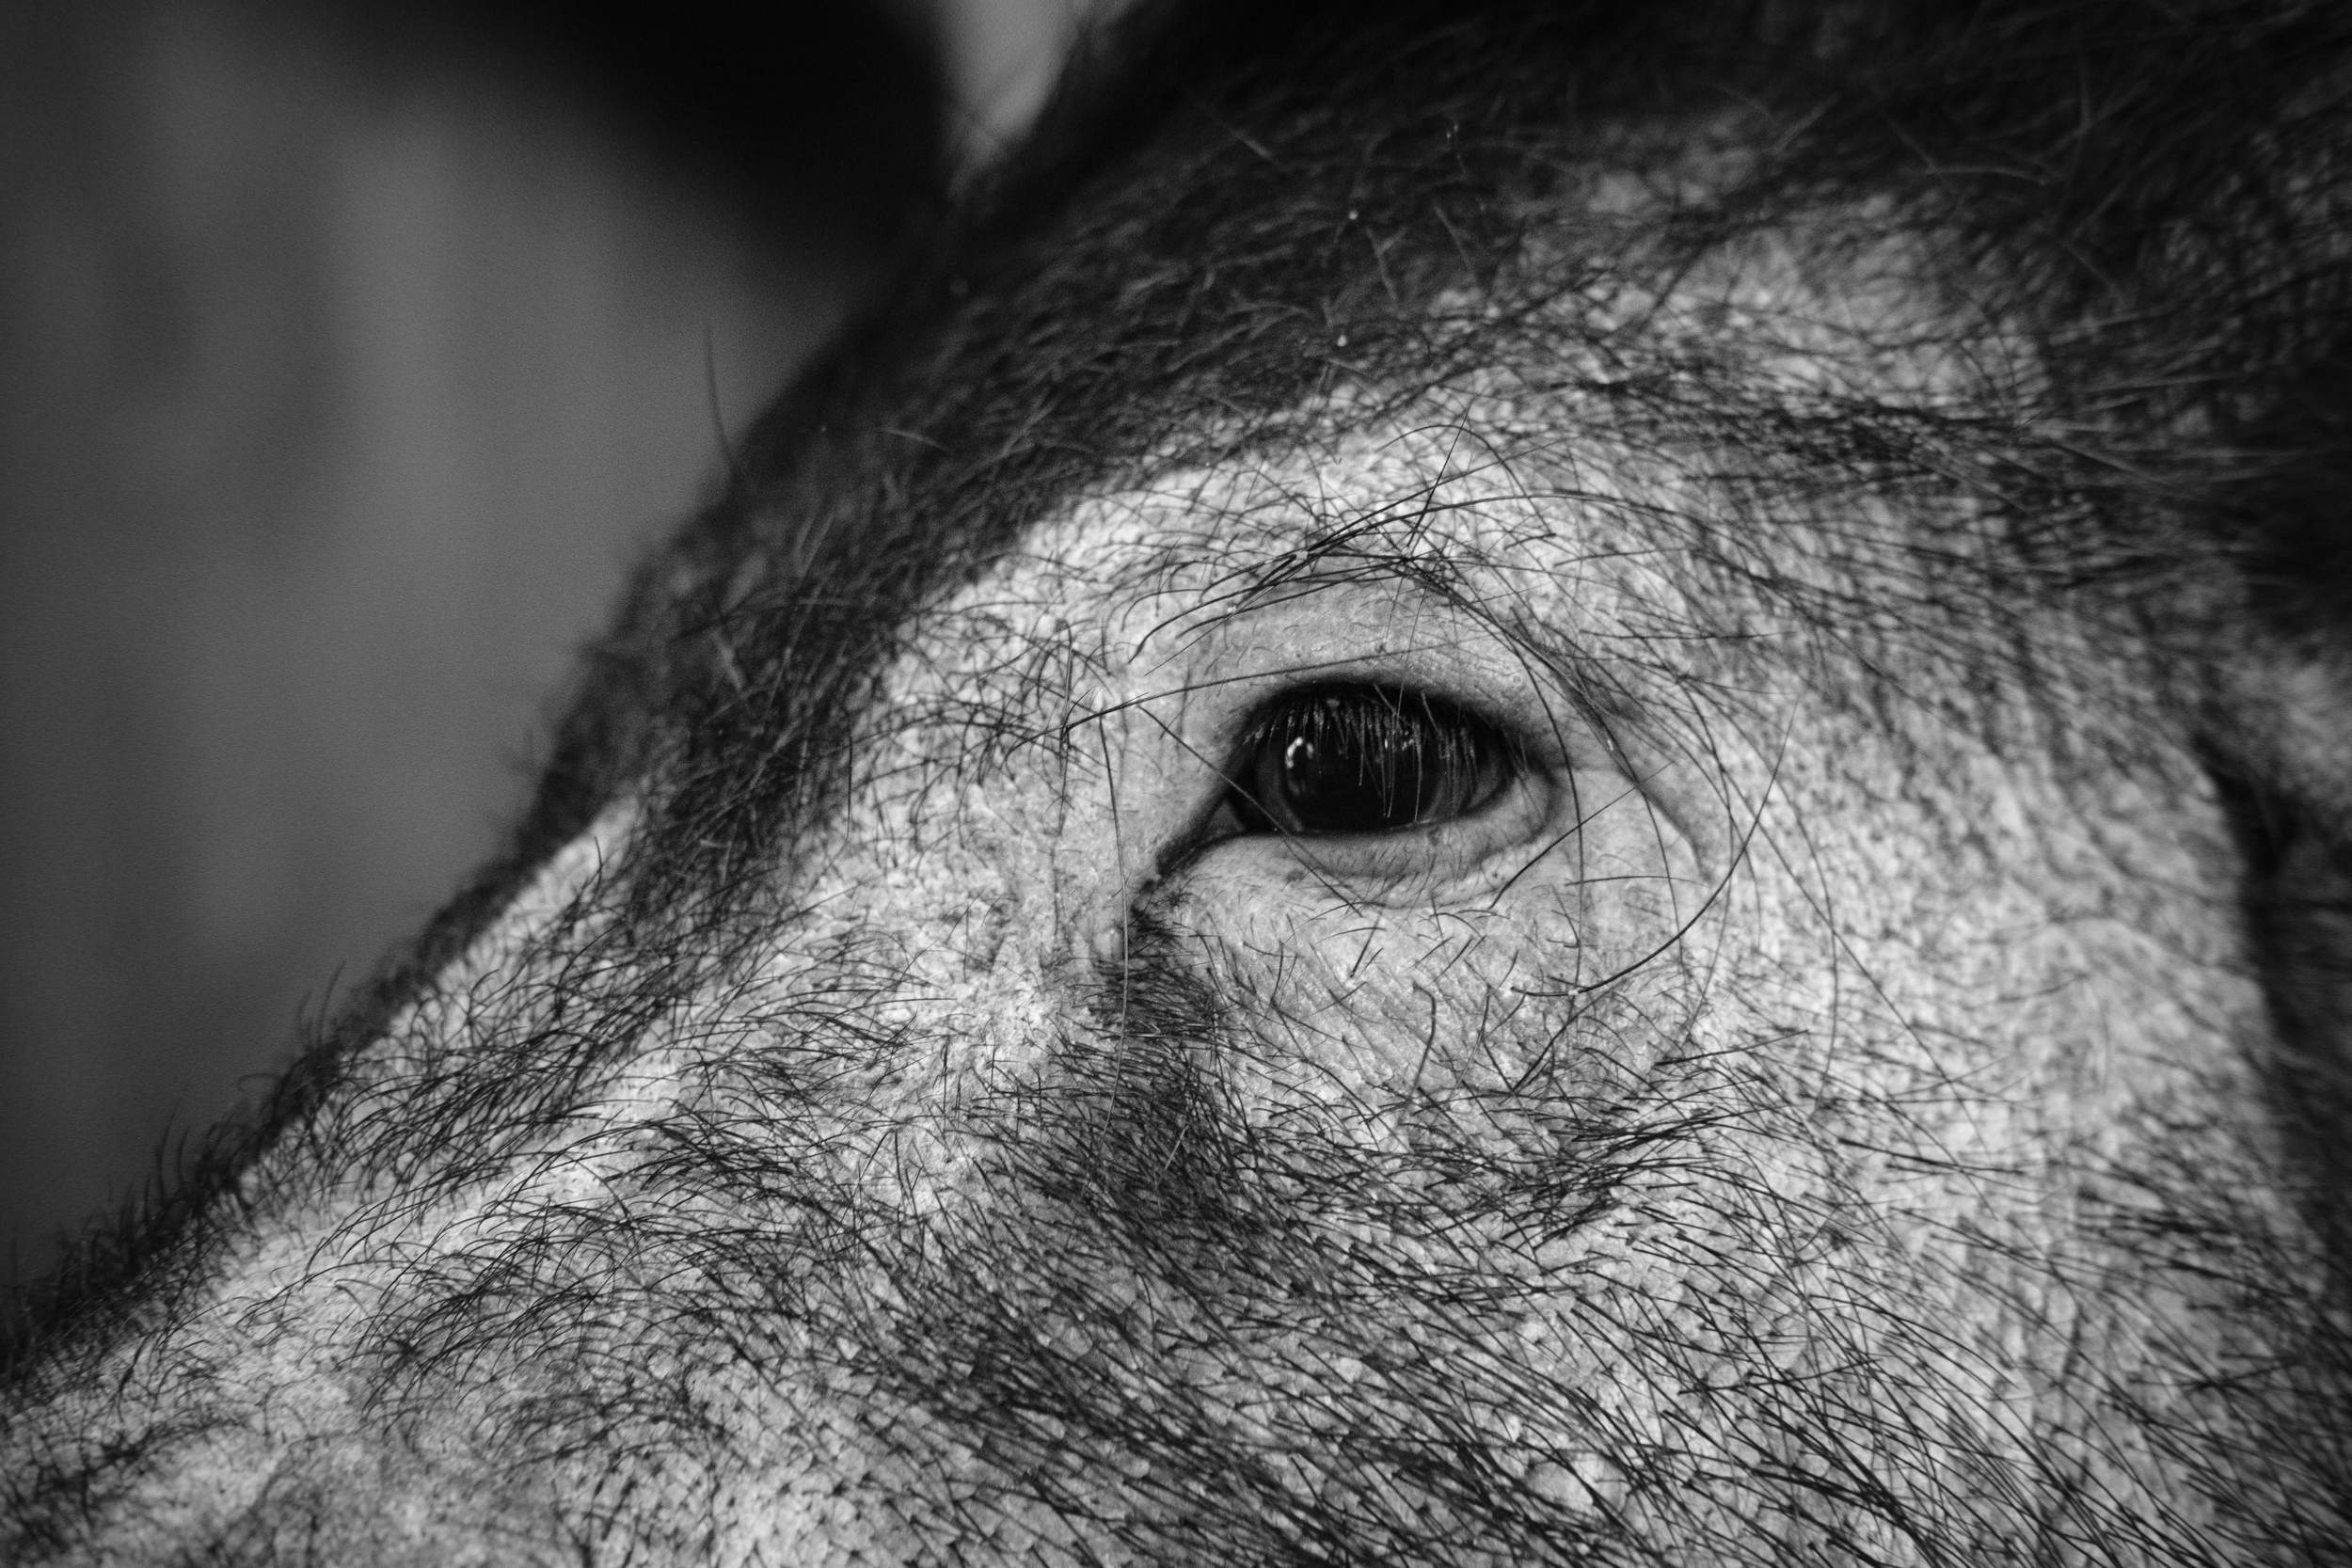 Black & White close up of pig's eye at Eshottheugh Animal Park, Northumberland